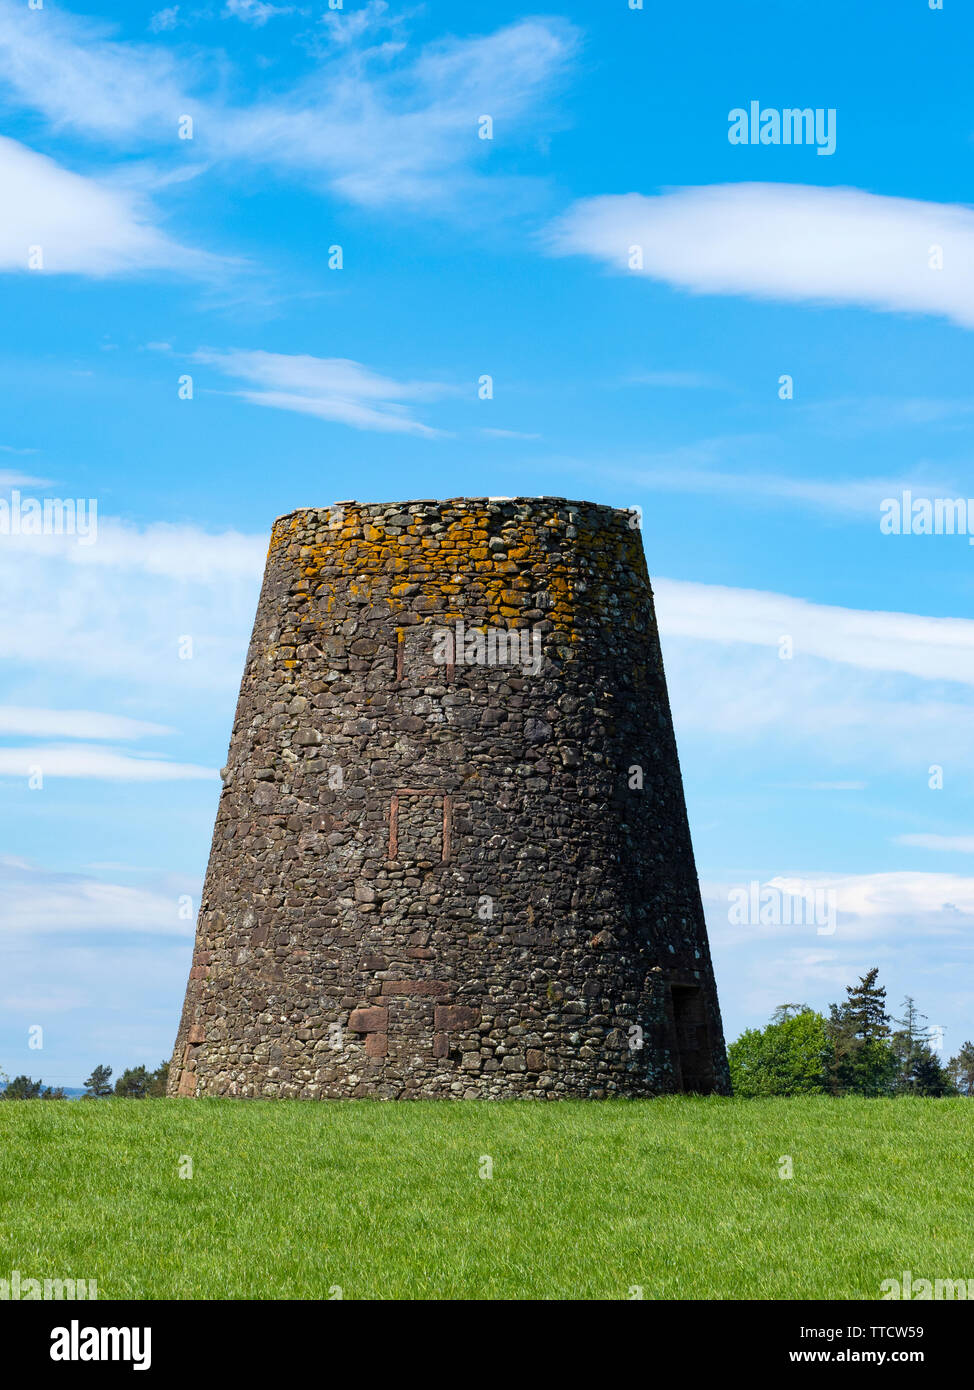 Remains of an old windmill - Stock Image